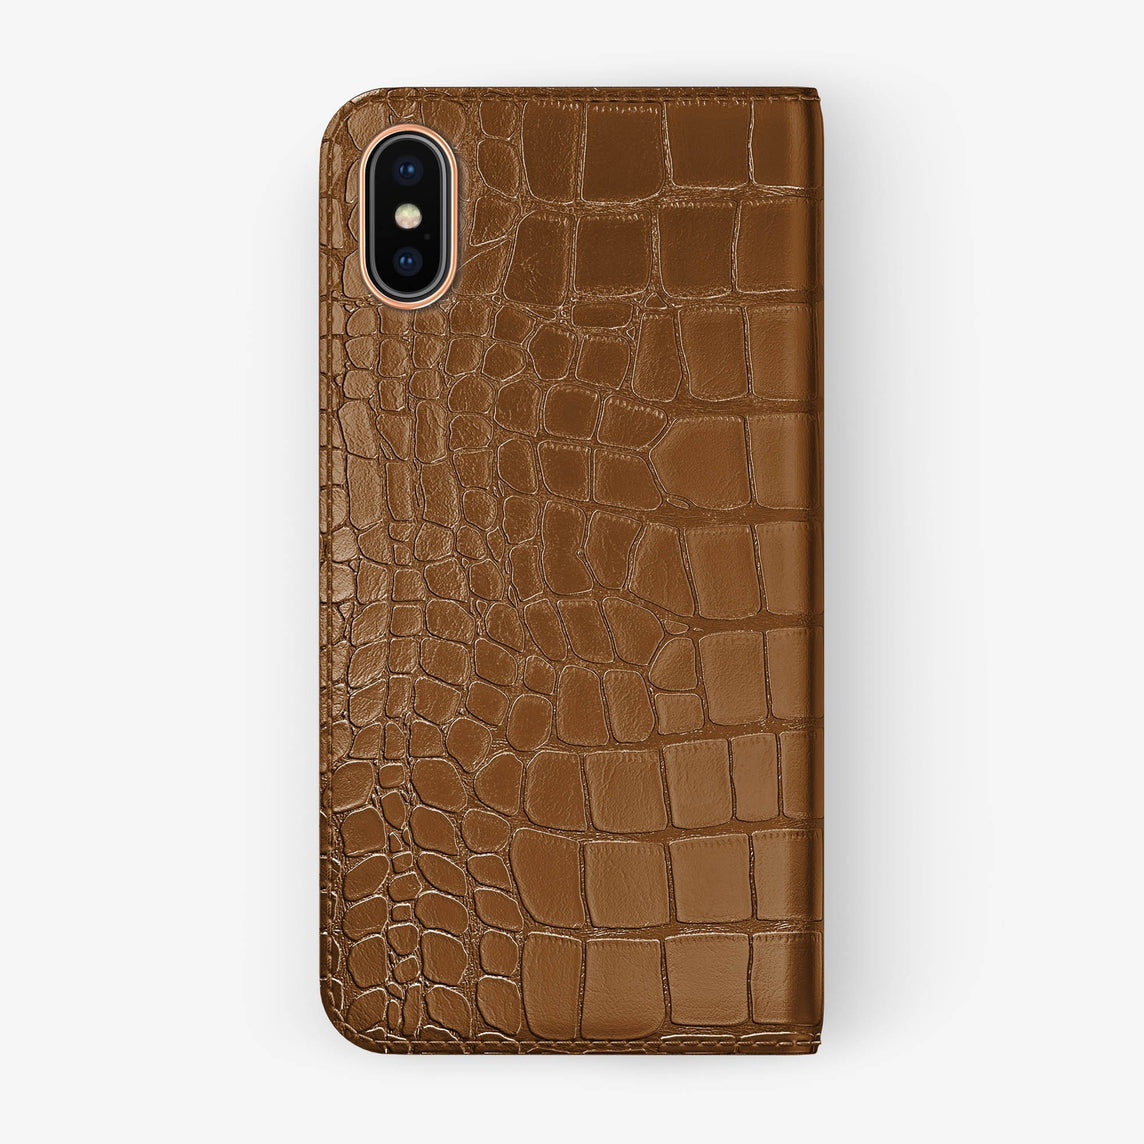 Cognac Alligator iPhone Folio Case for iPhone X finishing rose gold - Hadoro Luxury Cases